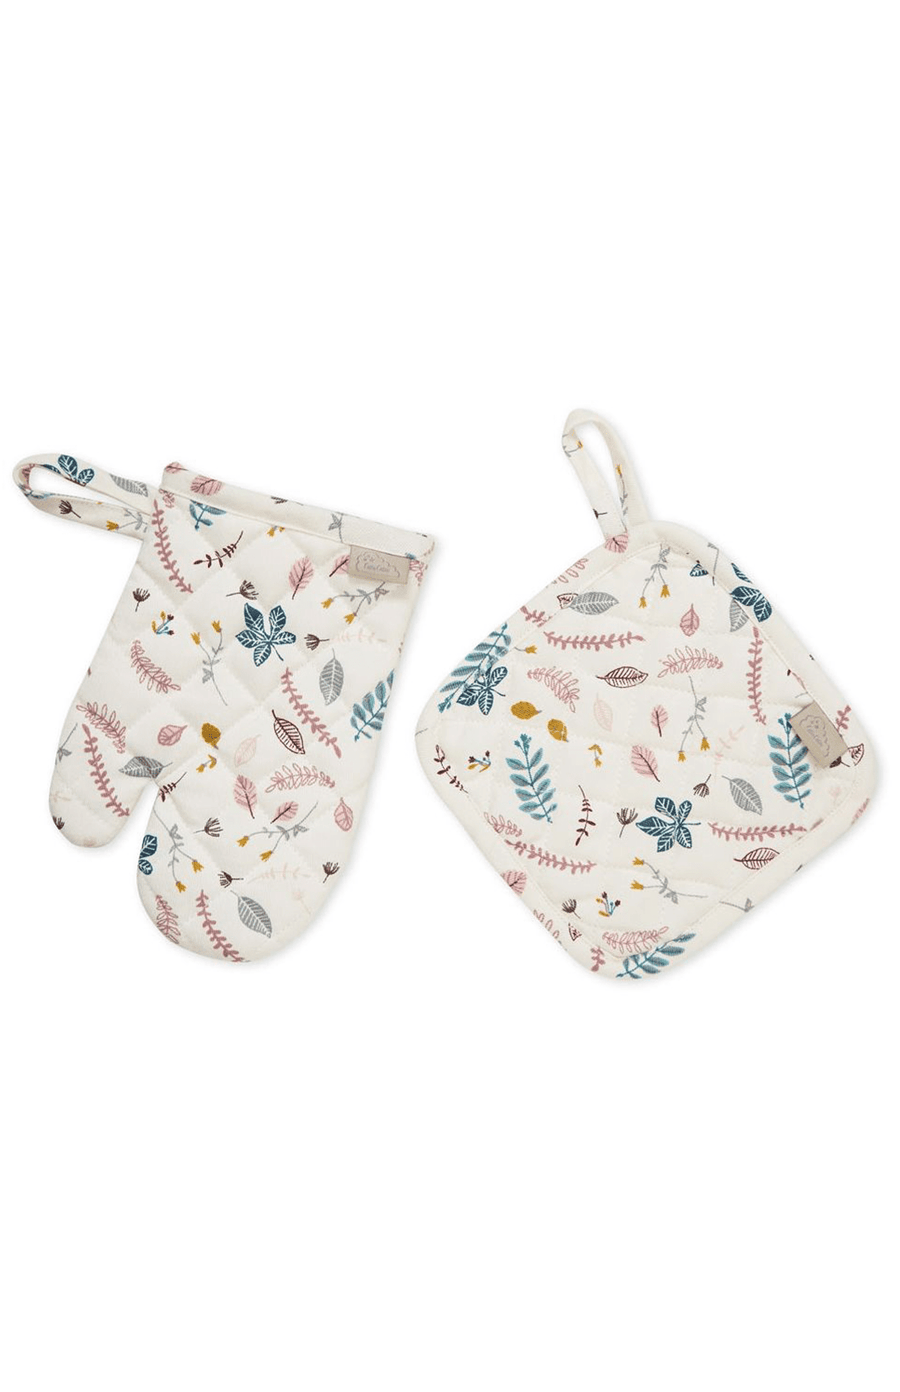 Cam Cam Copenhagen Kids Oven Glove Play set - Pressed Leaves Rose